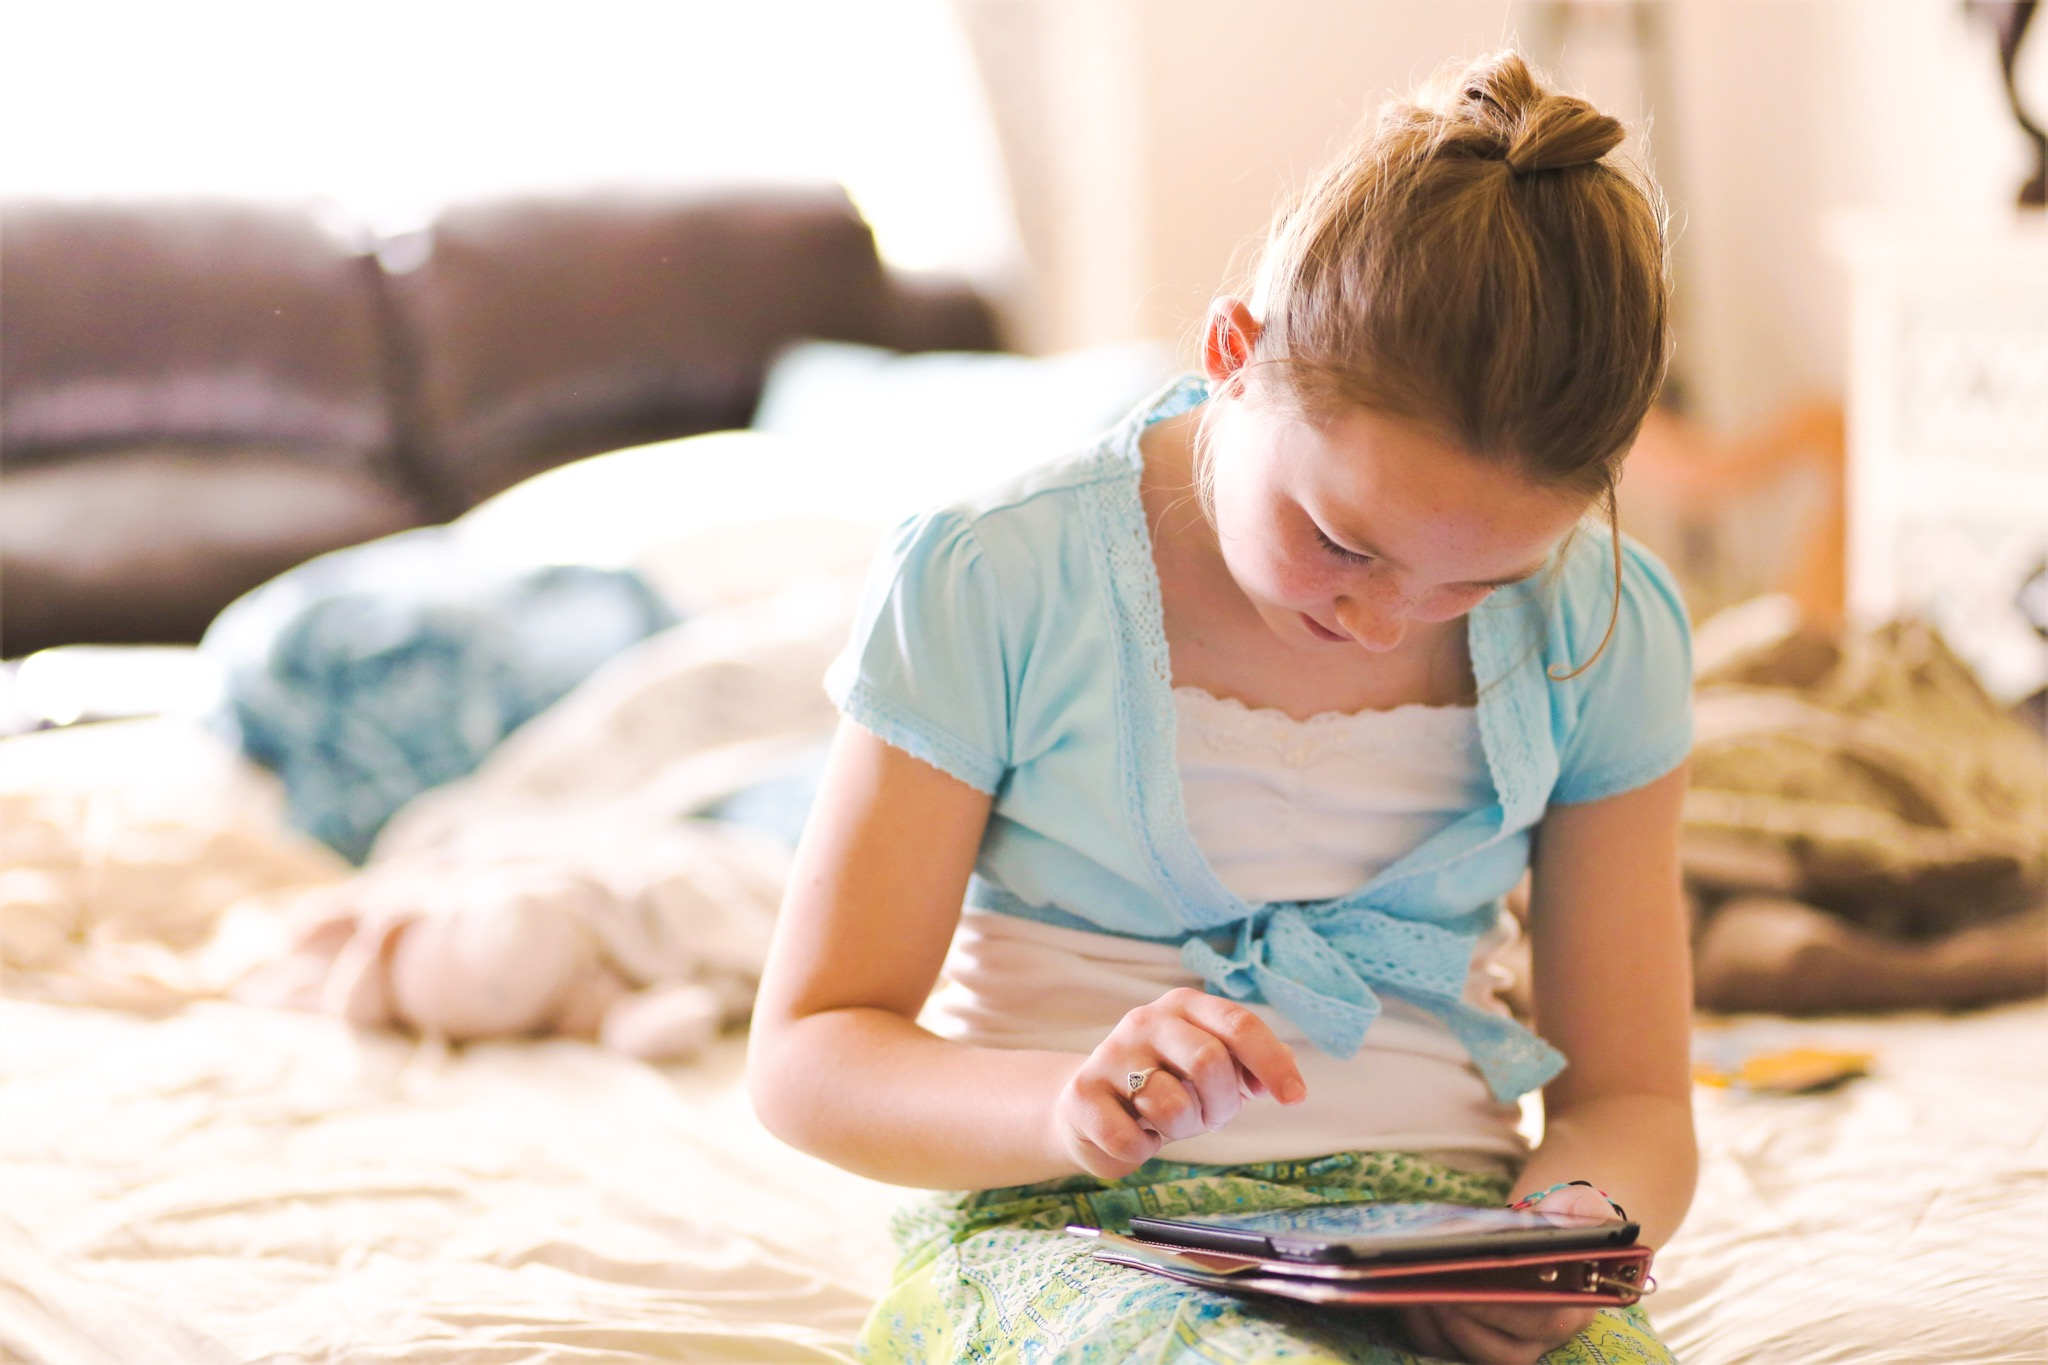 blonde girl sat on bed looking at iPad